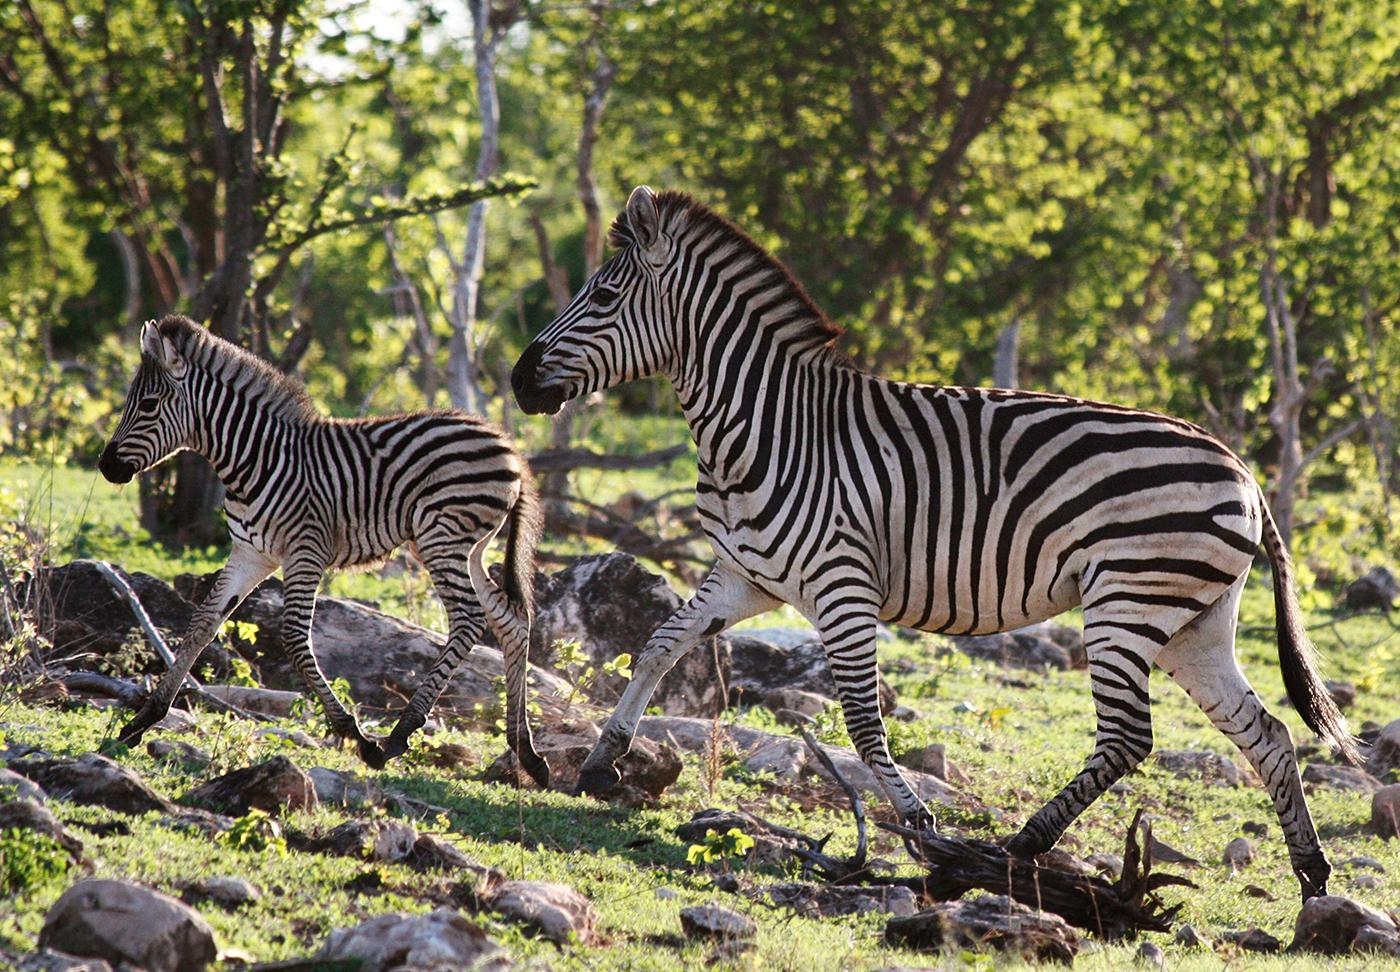 A zebra mare and her foal run through the woods in Chobe National Park, Botswana. Photo: BBC/Robert Morgan